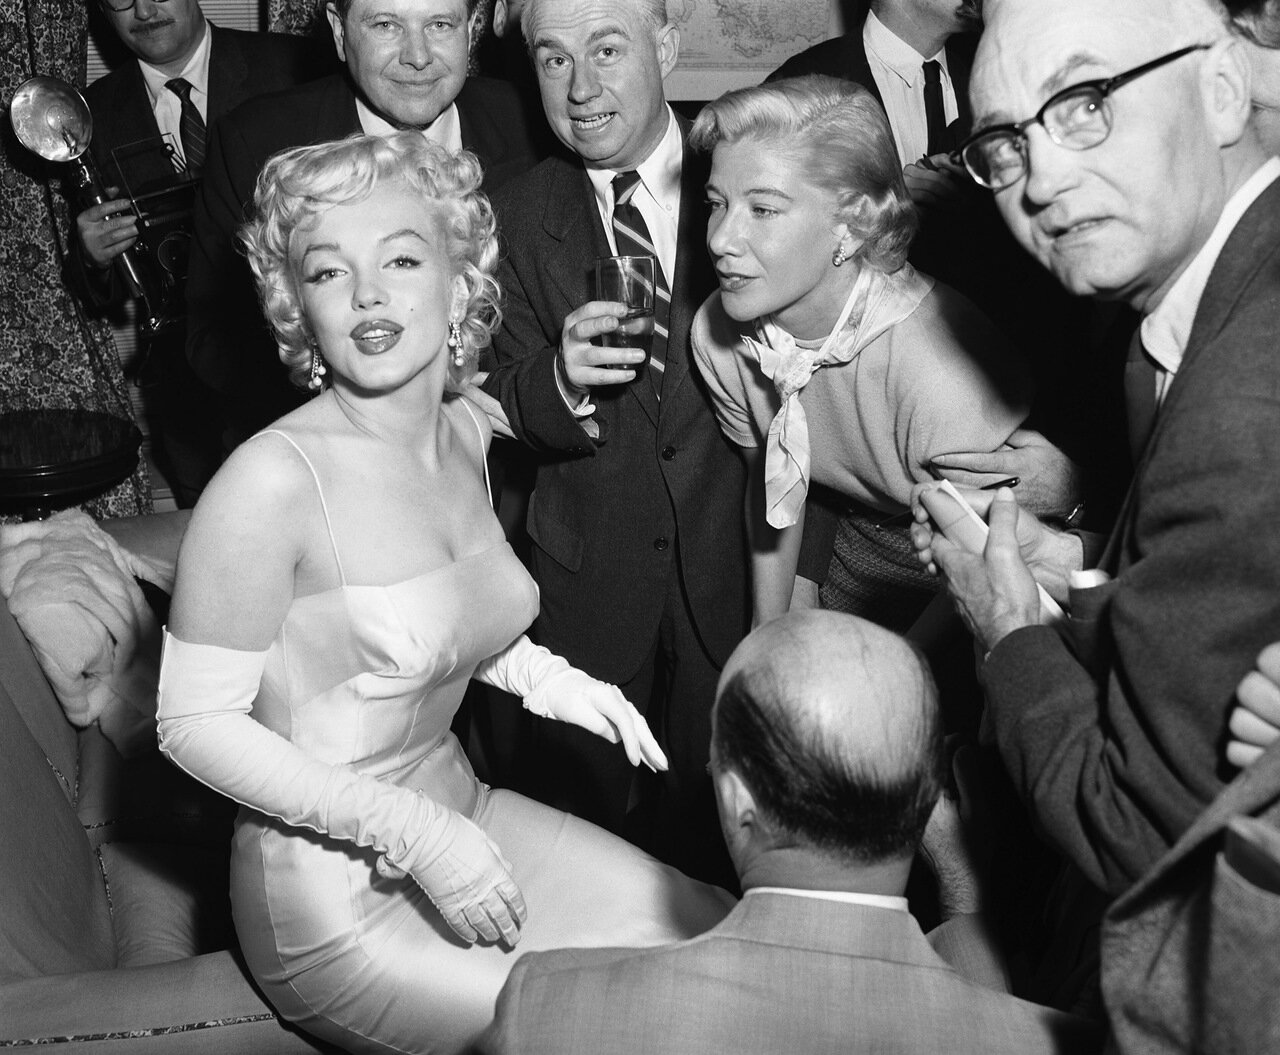 Marilyn Monroe Unveiling a New Look